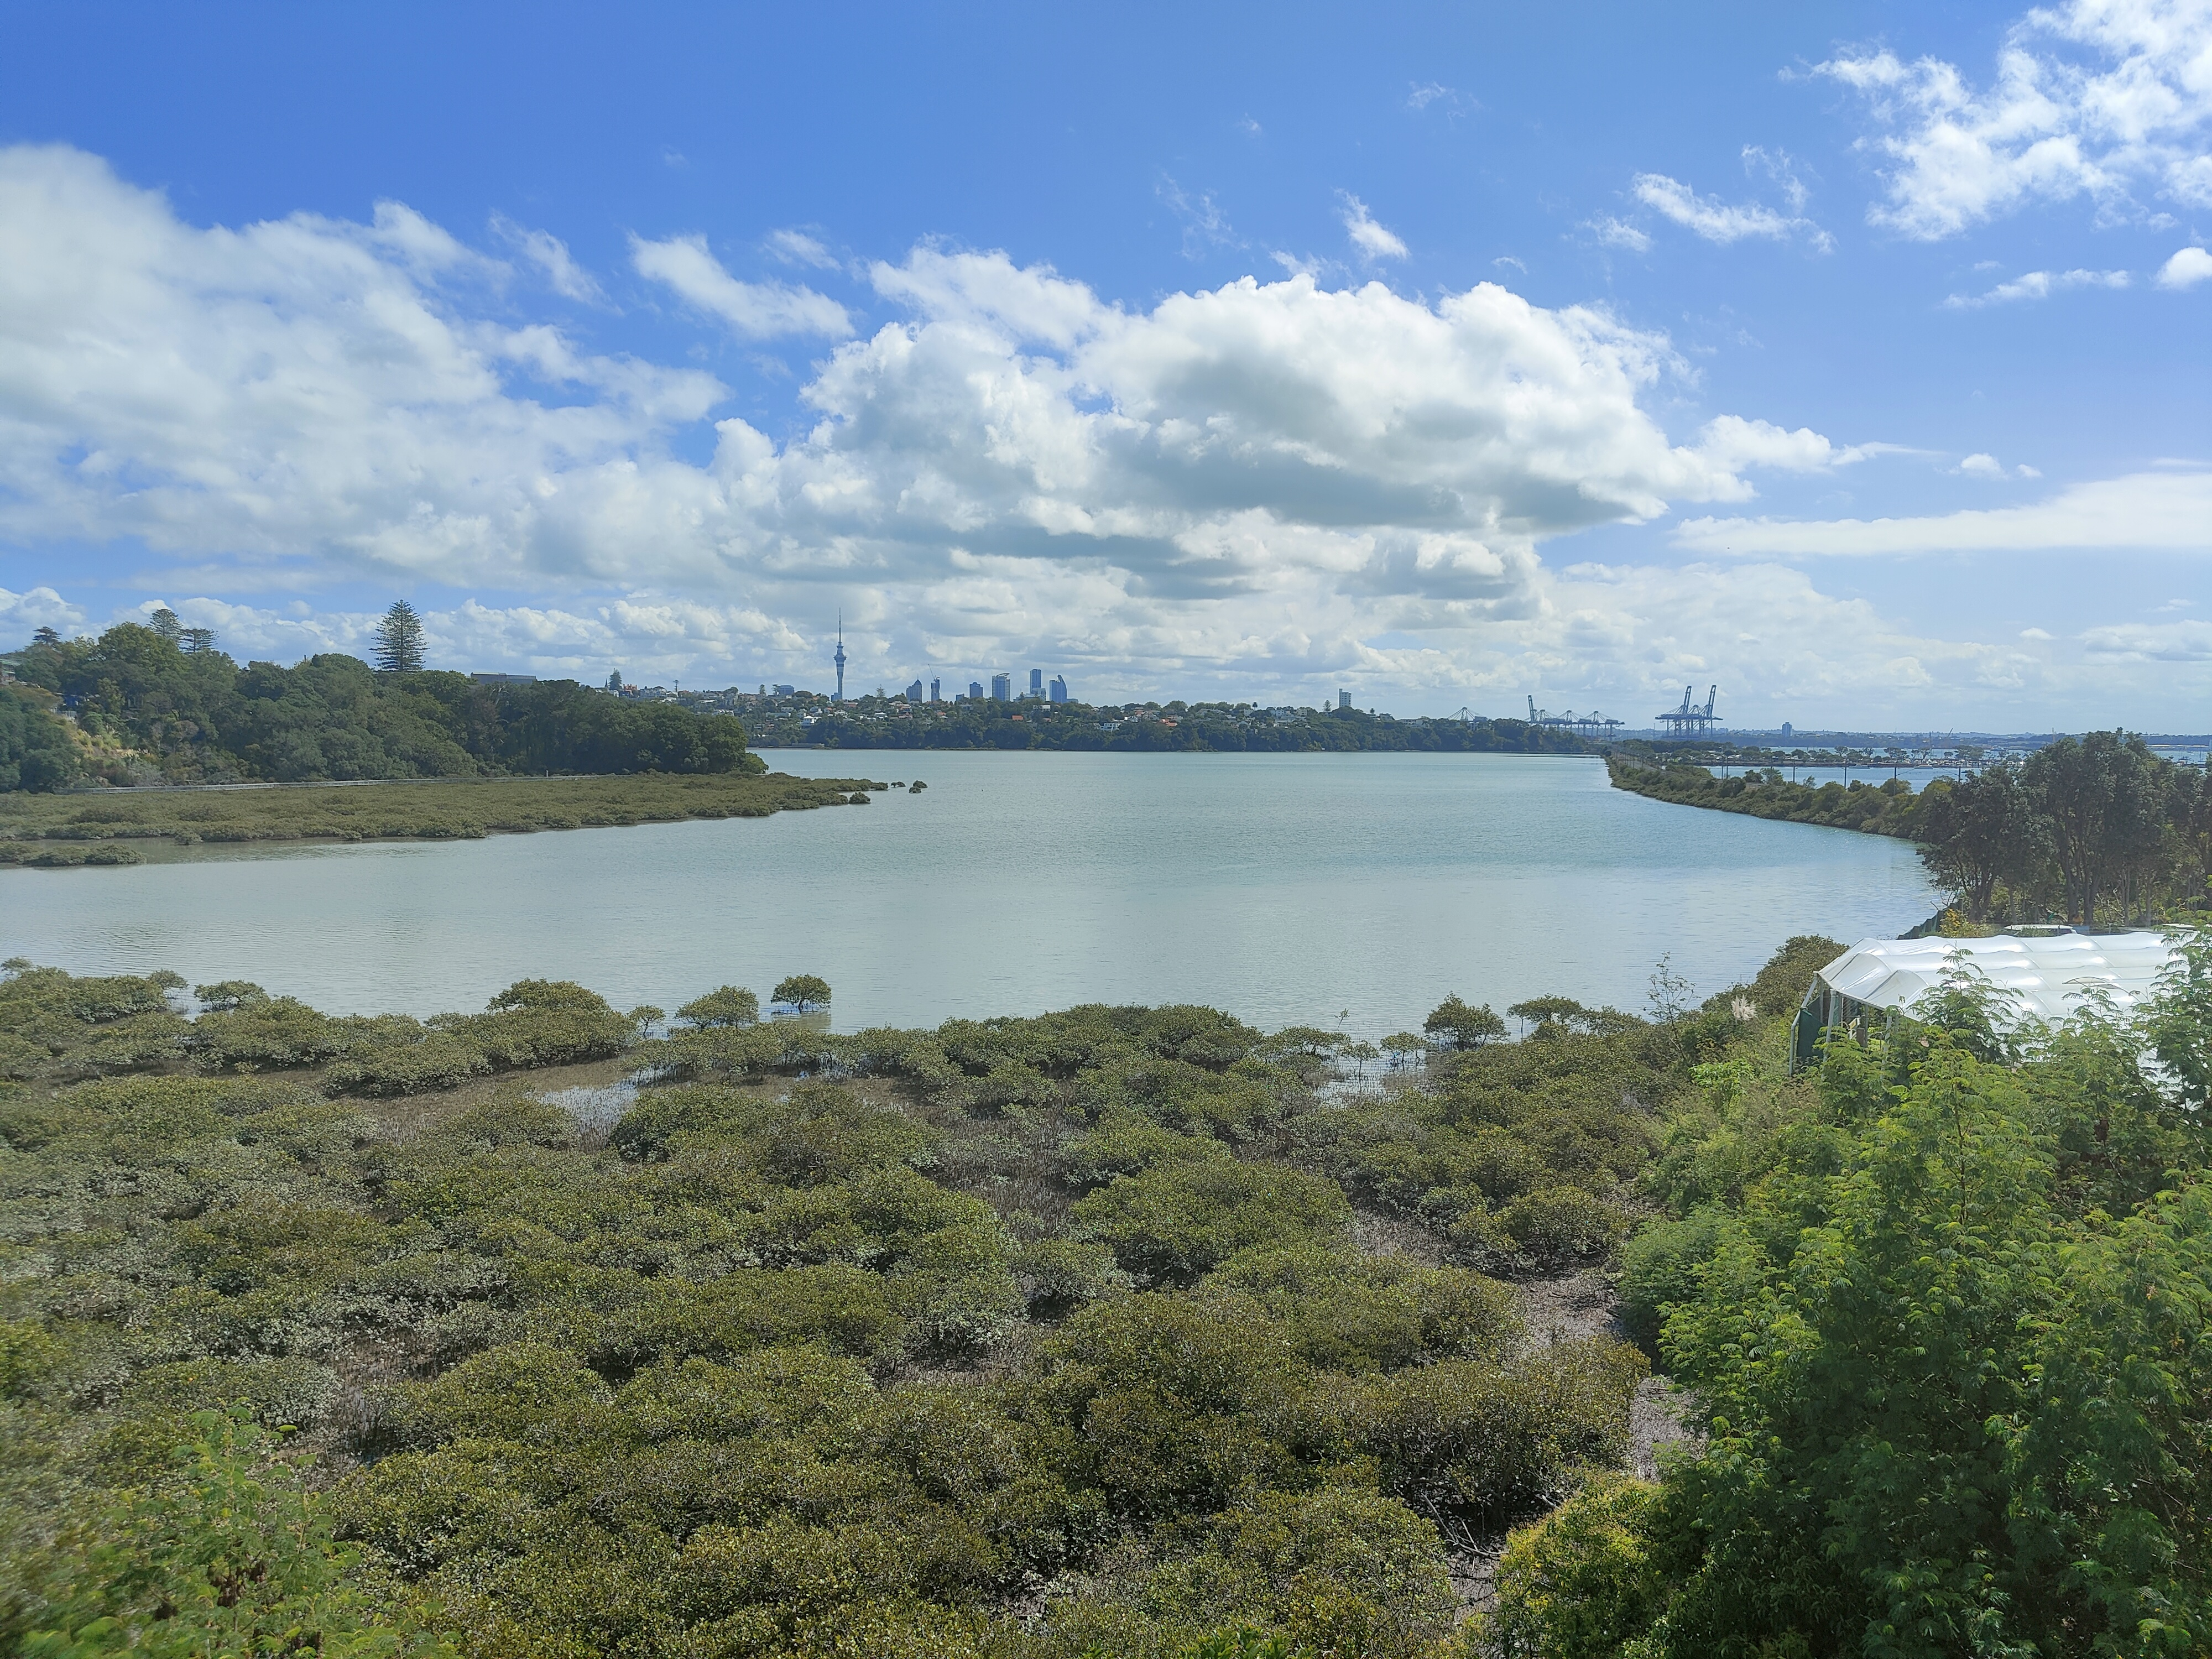 Looking to Auckland CBD across Hobson Bay